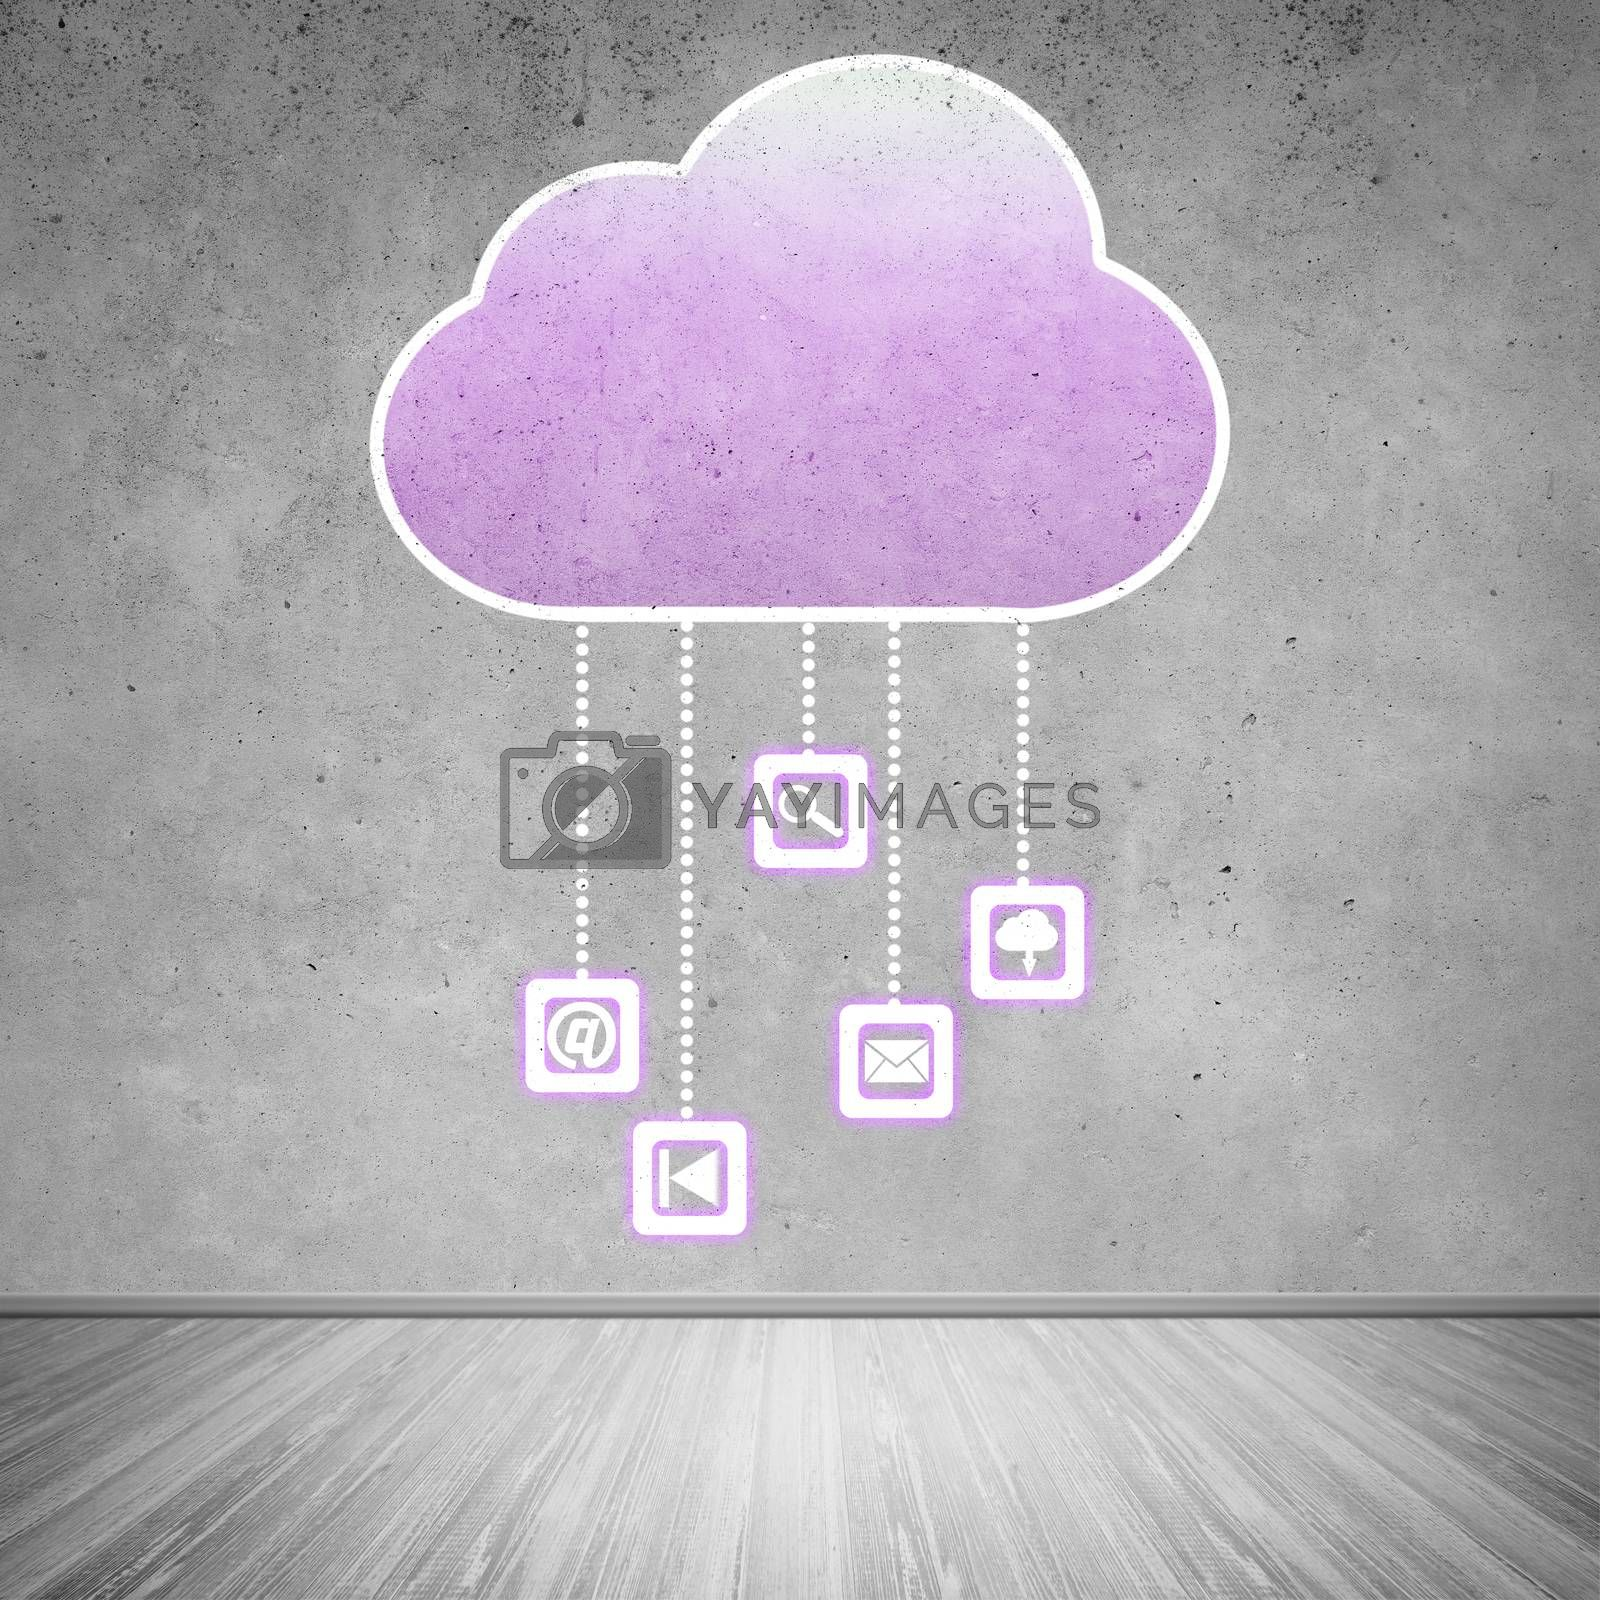 Colorful cloud with business icons on cement wall